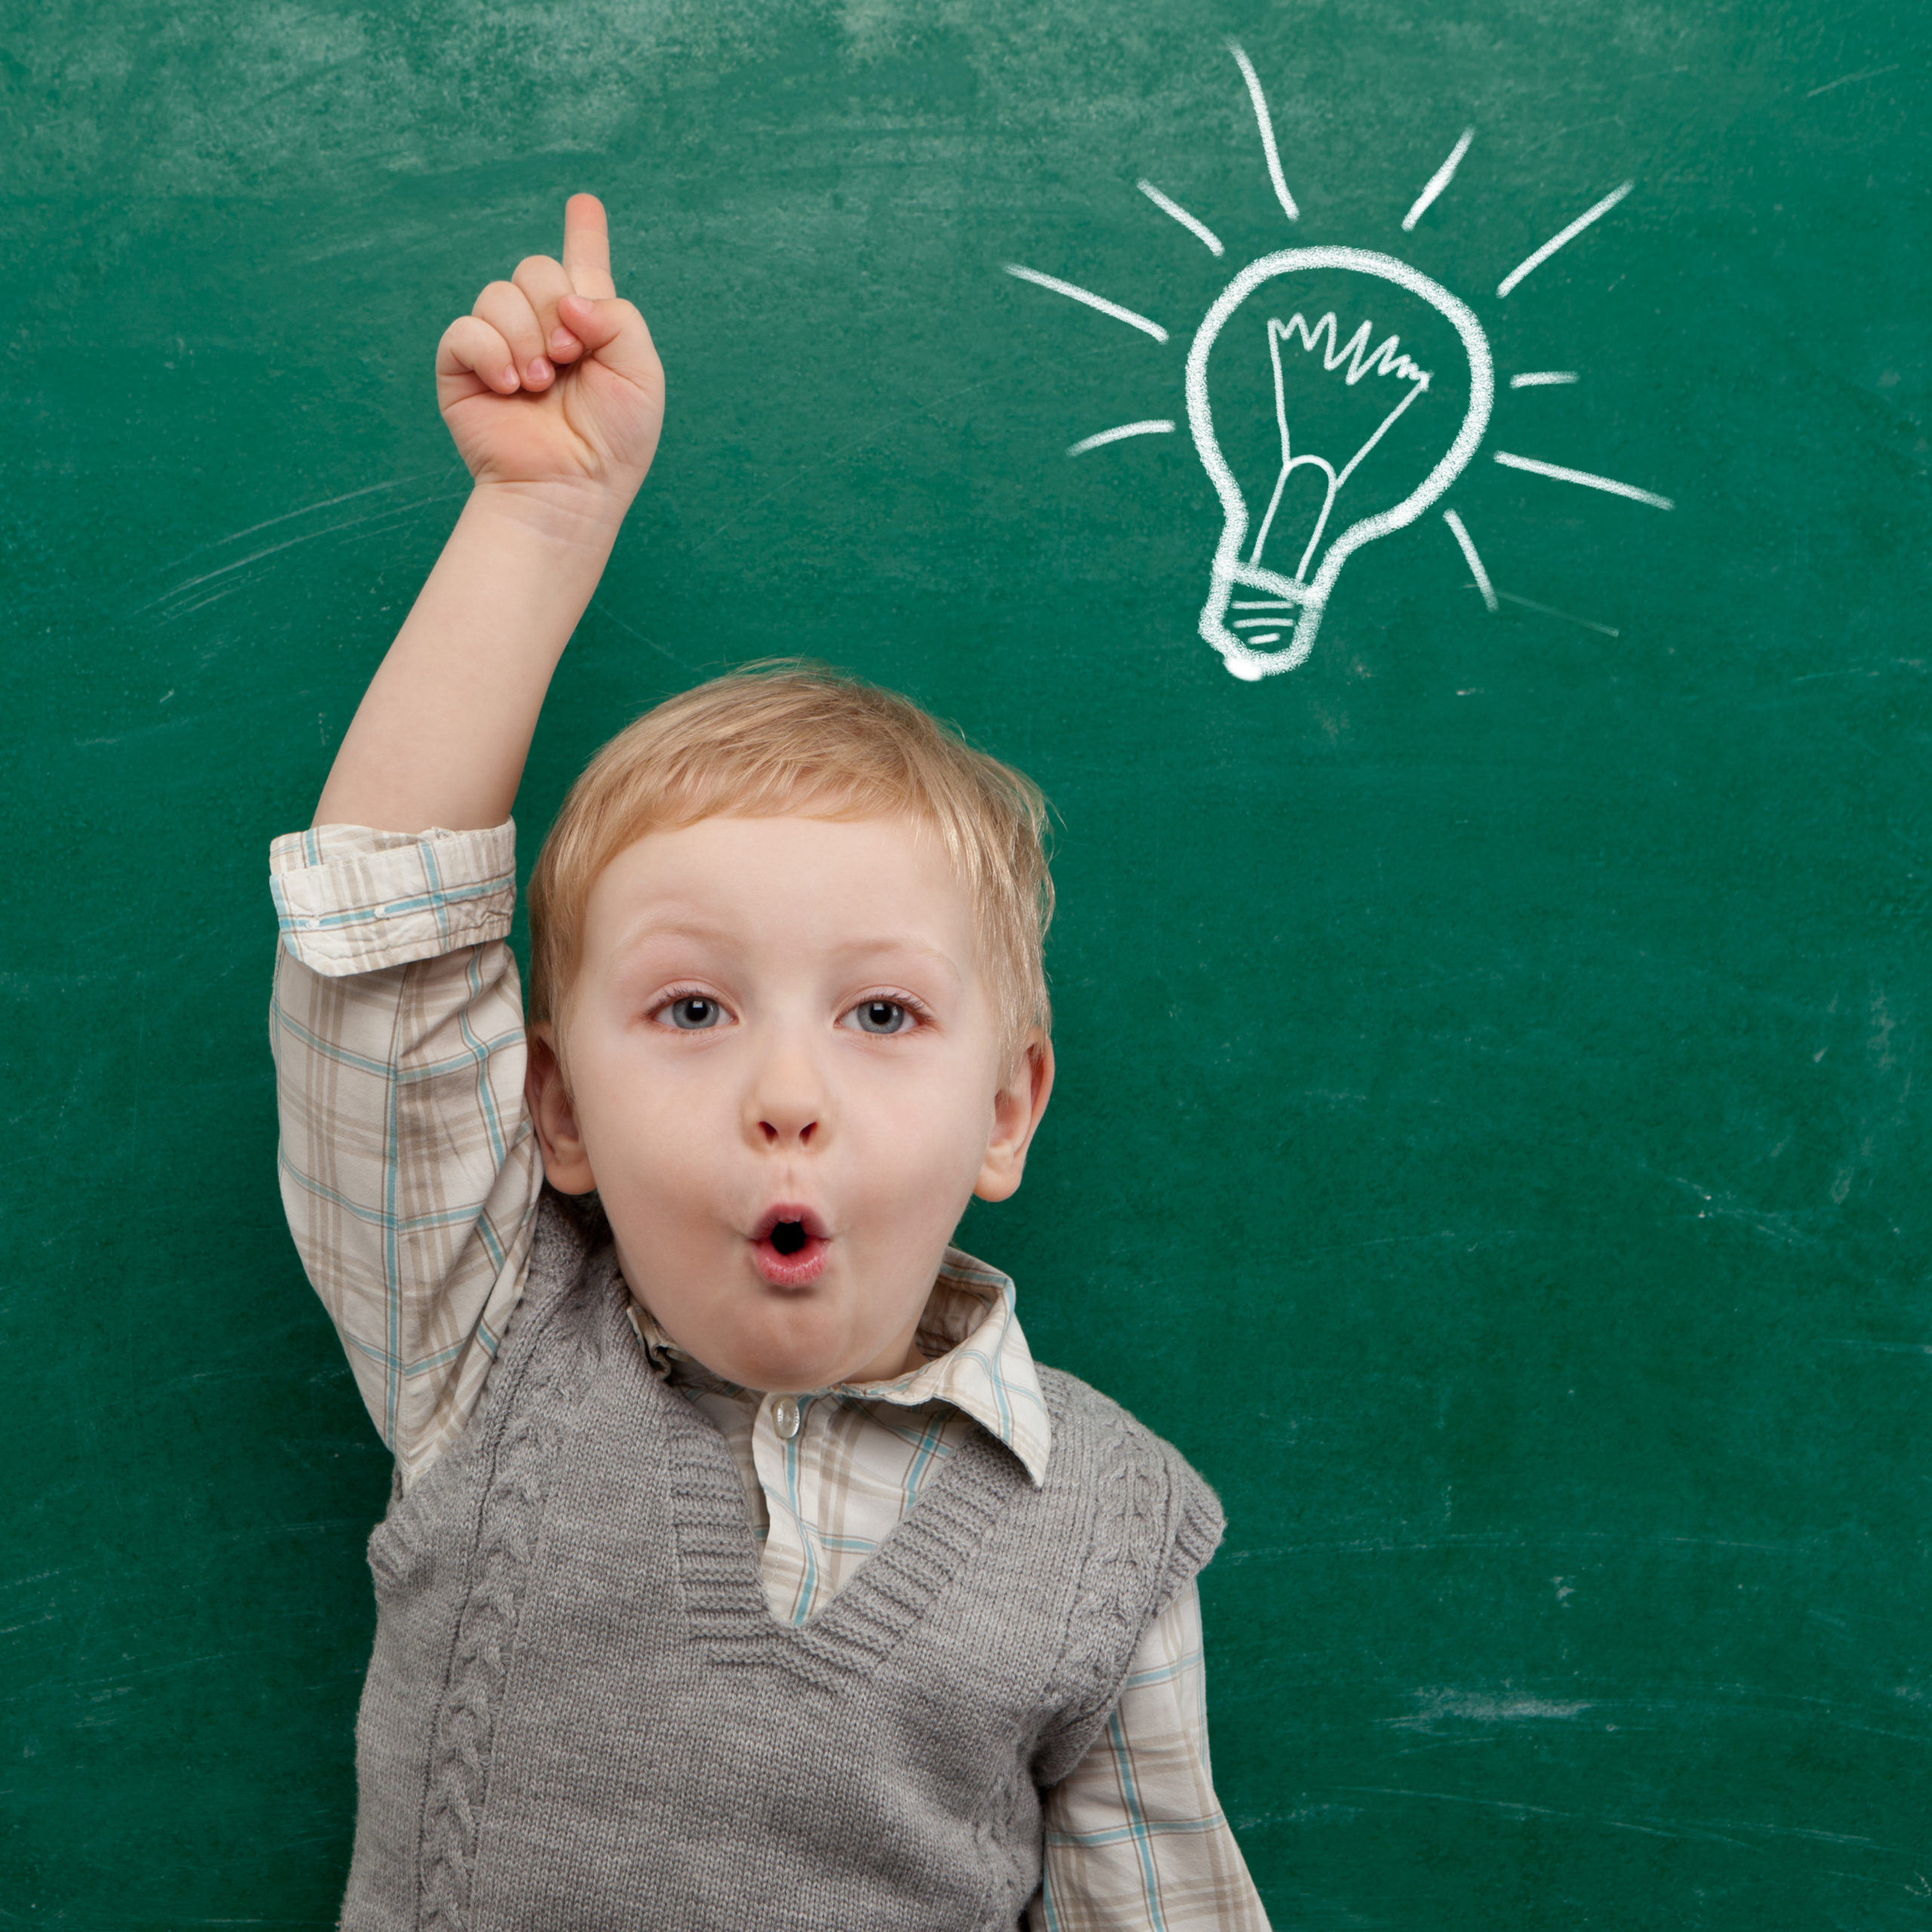 Kid raising his hand with surprise face and a bulb draw in a chalkboard